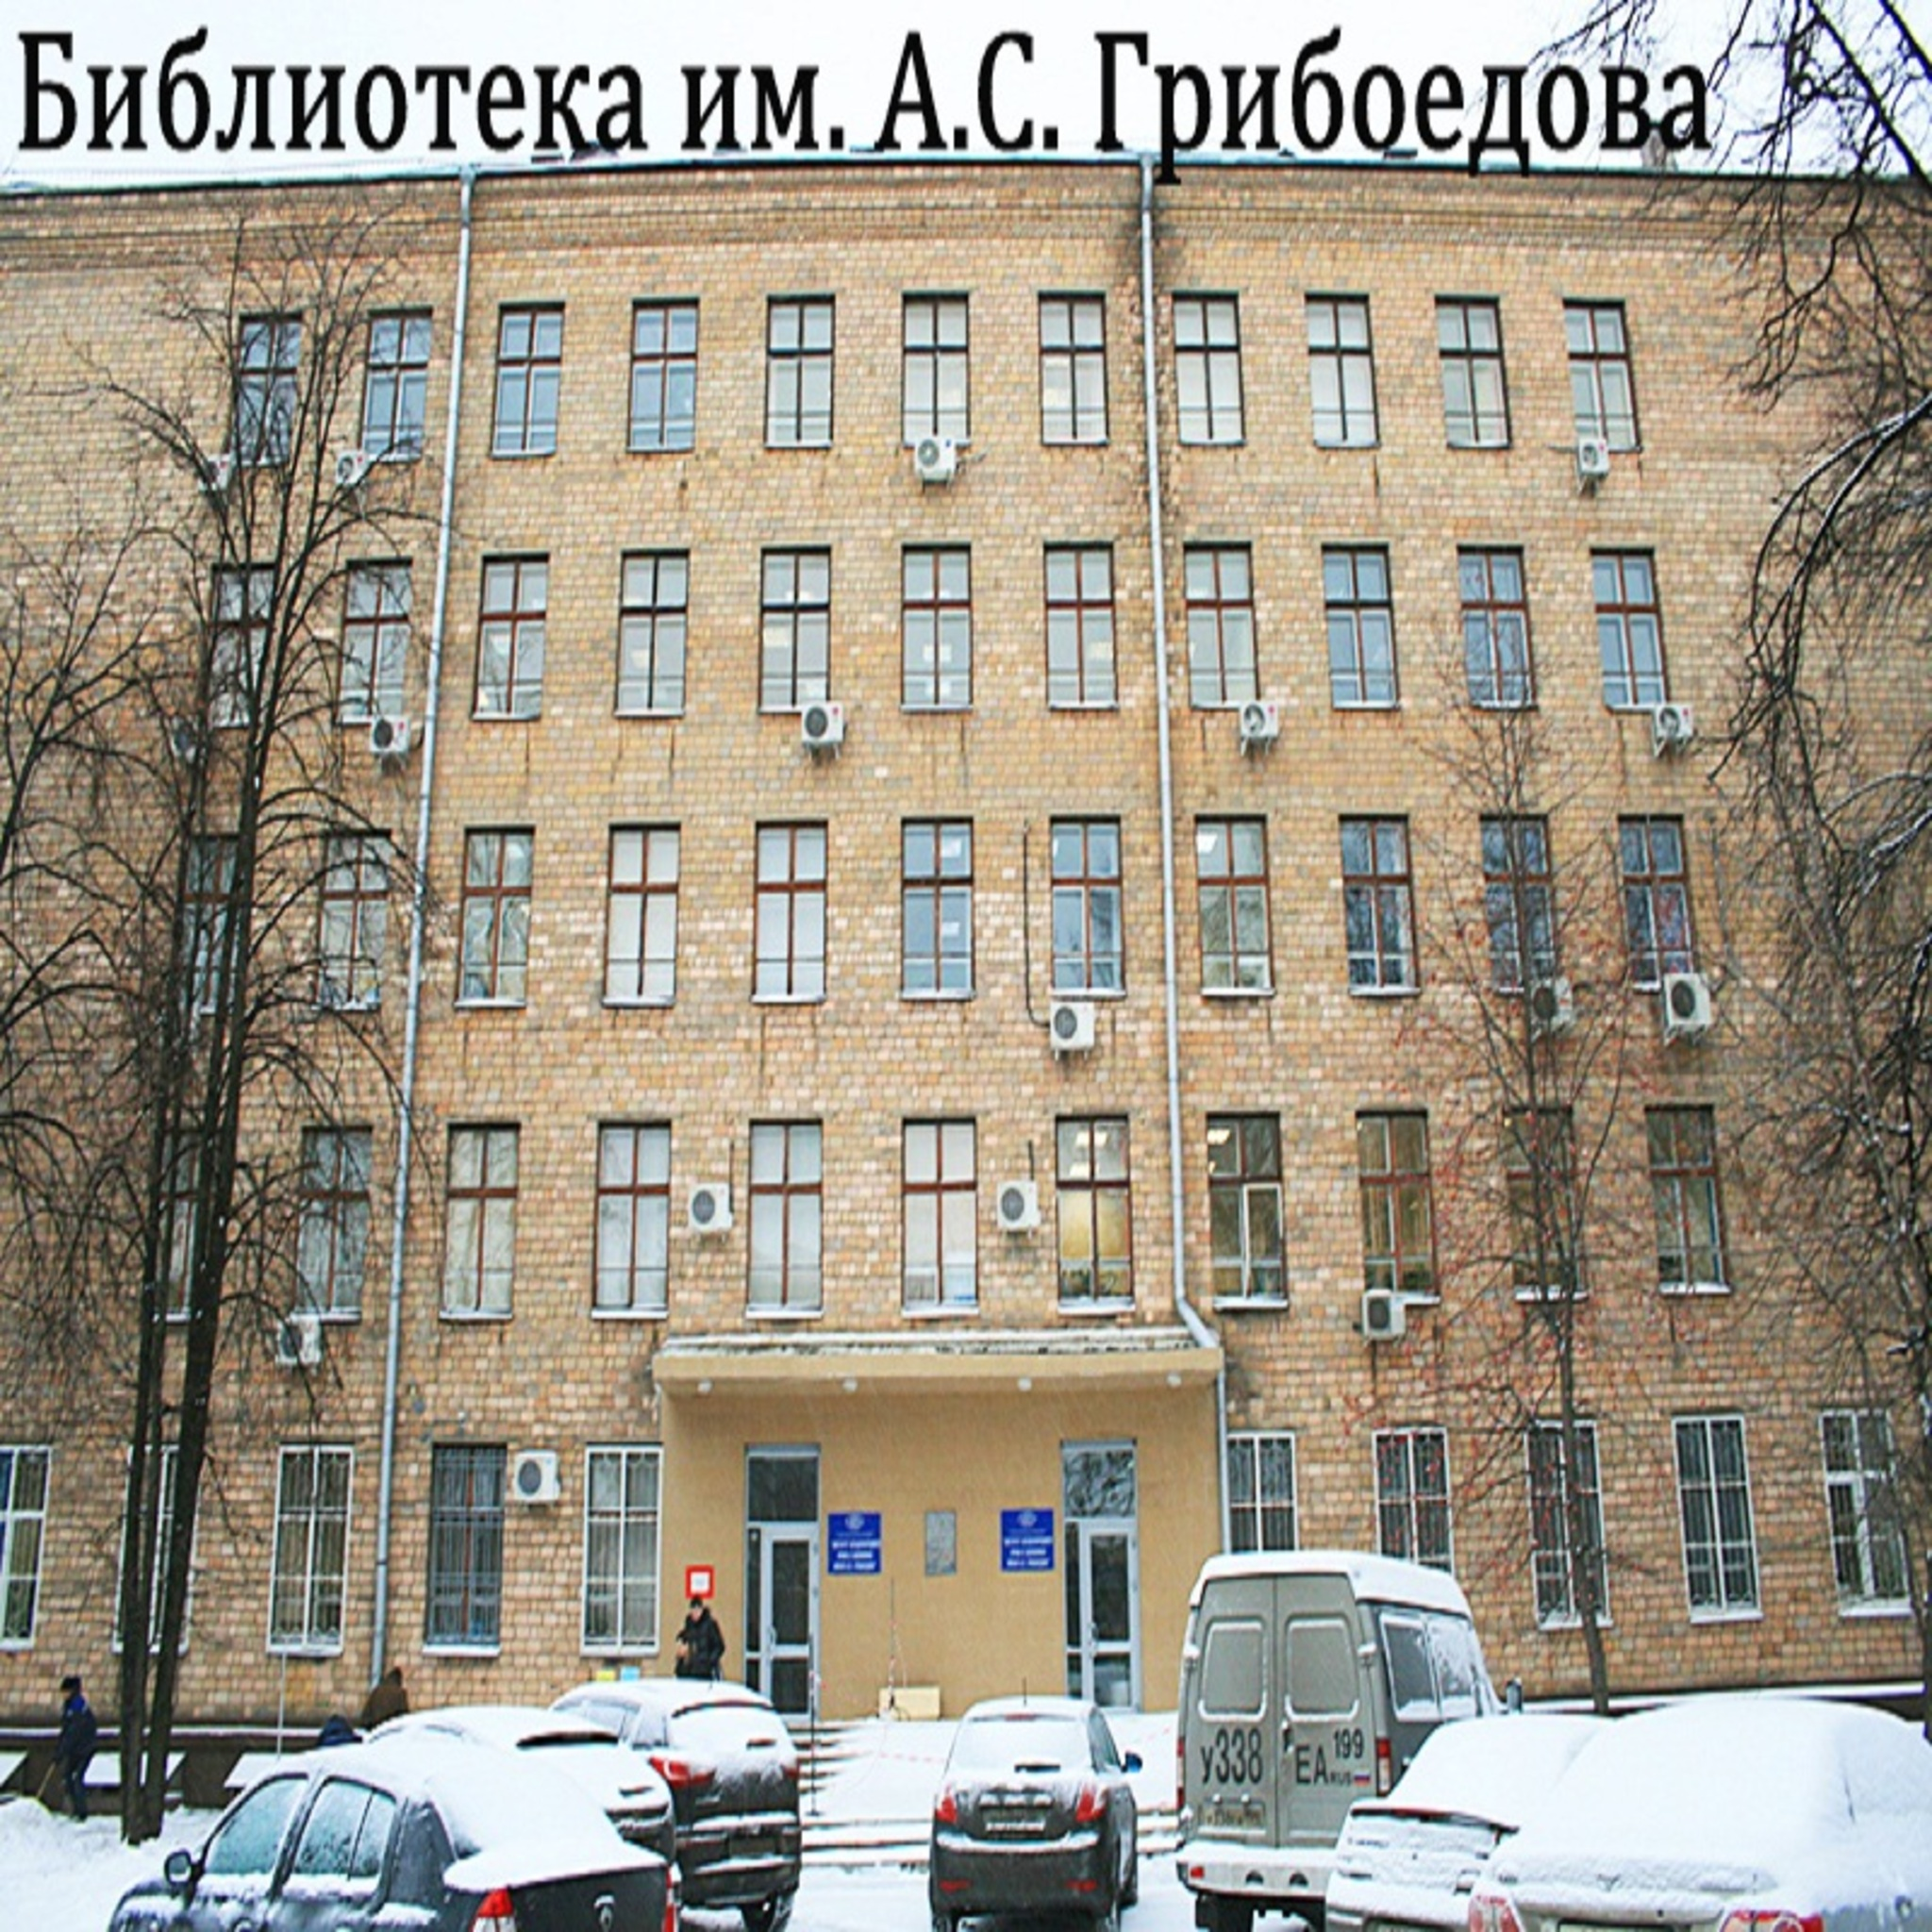 The library named after A. S. Griboedov